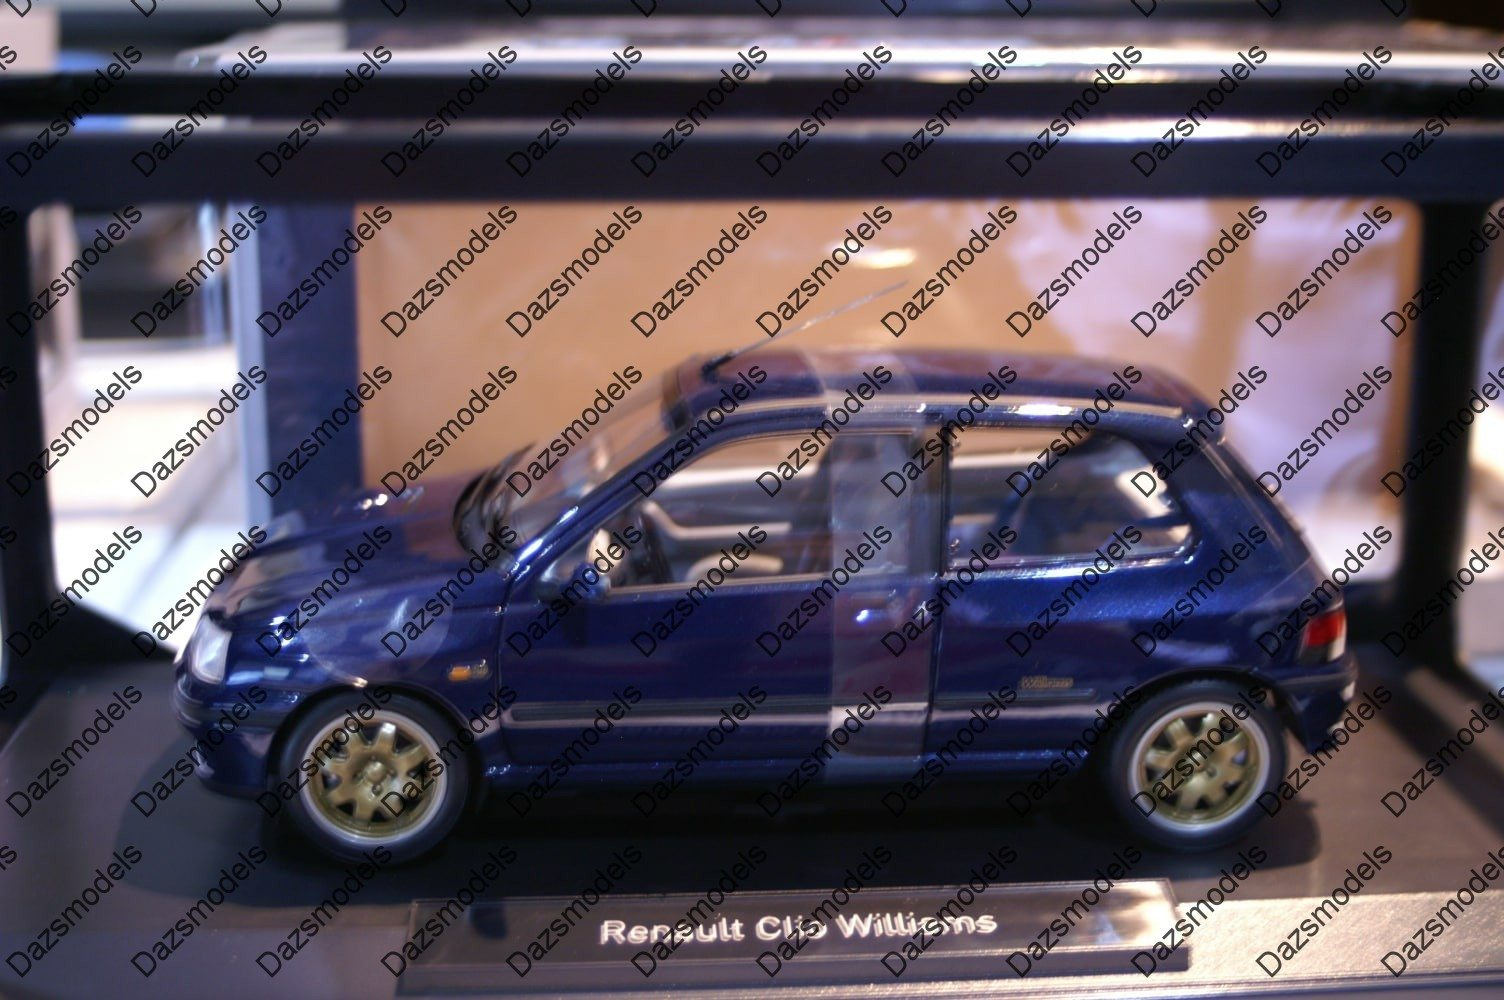 norev renault clio williams phase1 blue 1 18 scale 185230 ebay. Black Bedroom Furniture Sets. Home Design Ideas